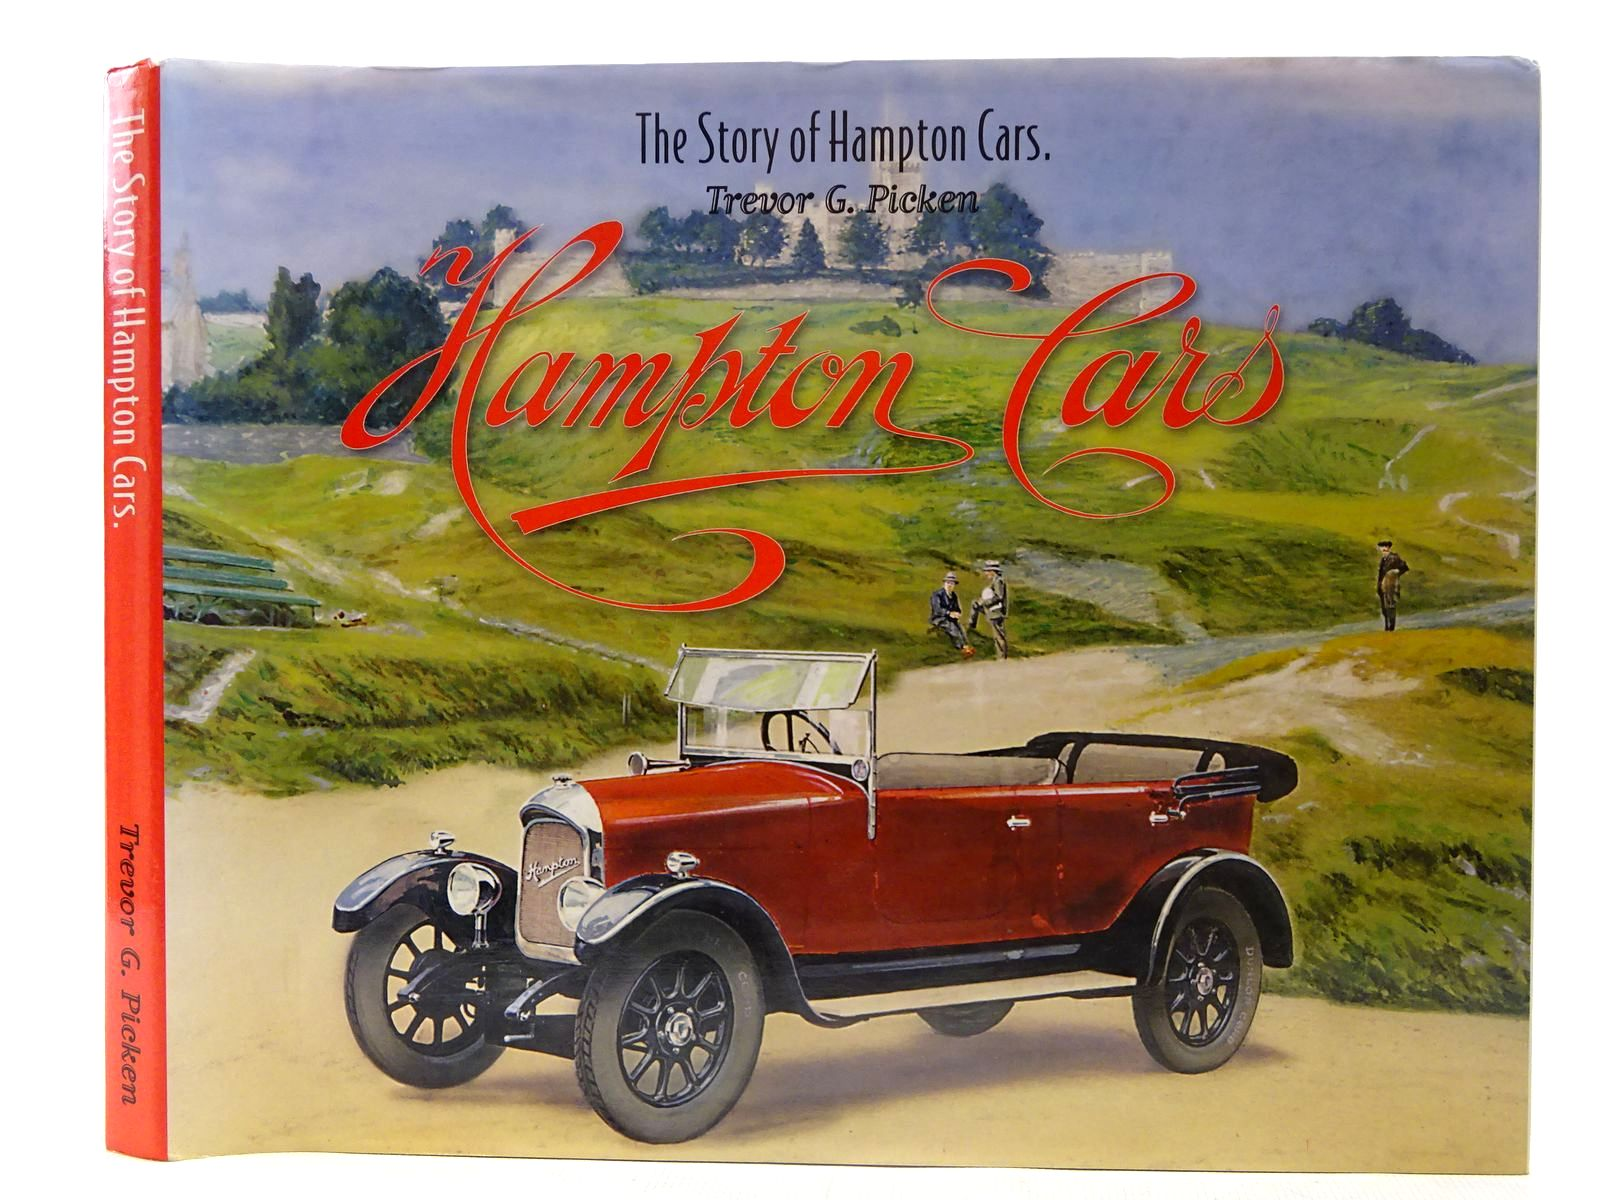 Photo of HAMPTON CARS written by Picken, Trevor G. published by Hampton Cars (STOCK CODE: 2127137)  for sale by Stella & Rose's Books